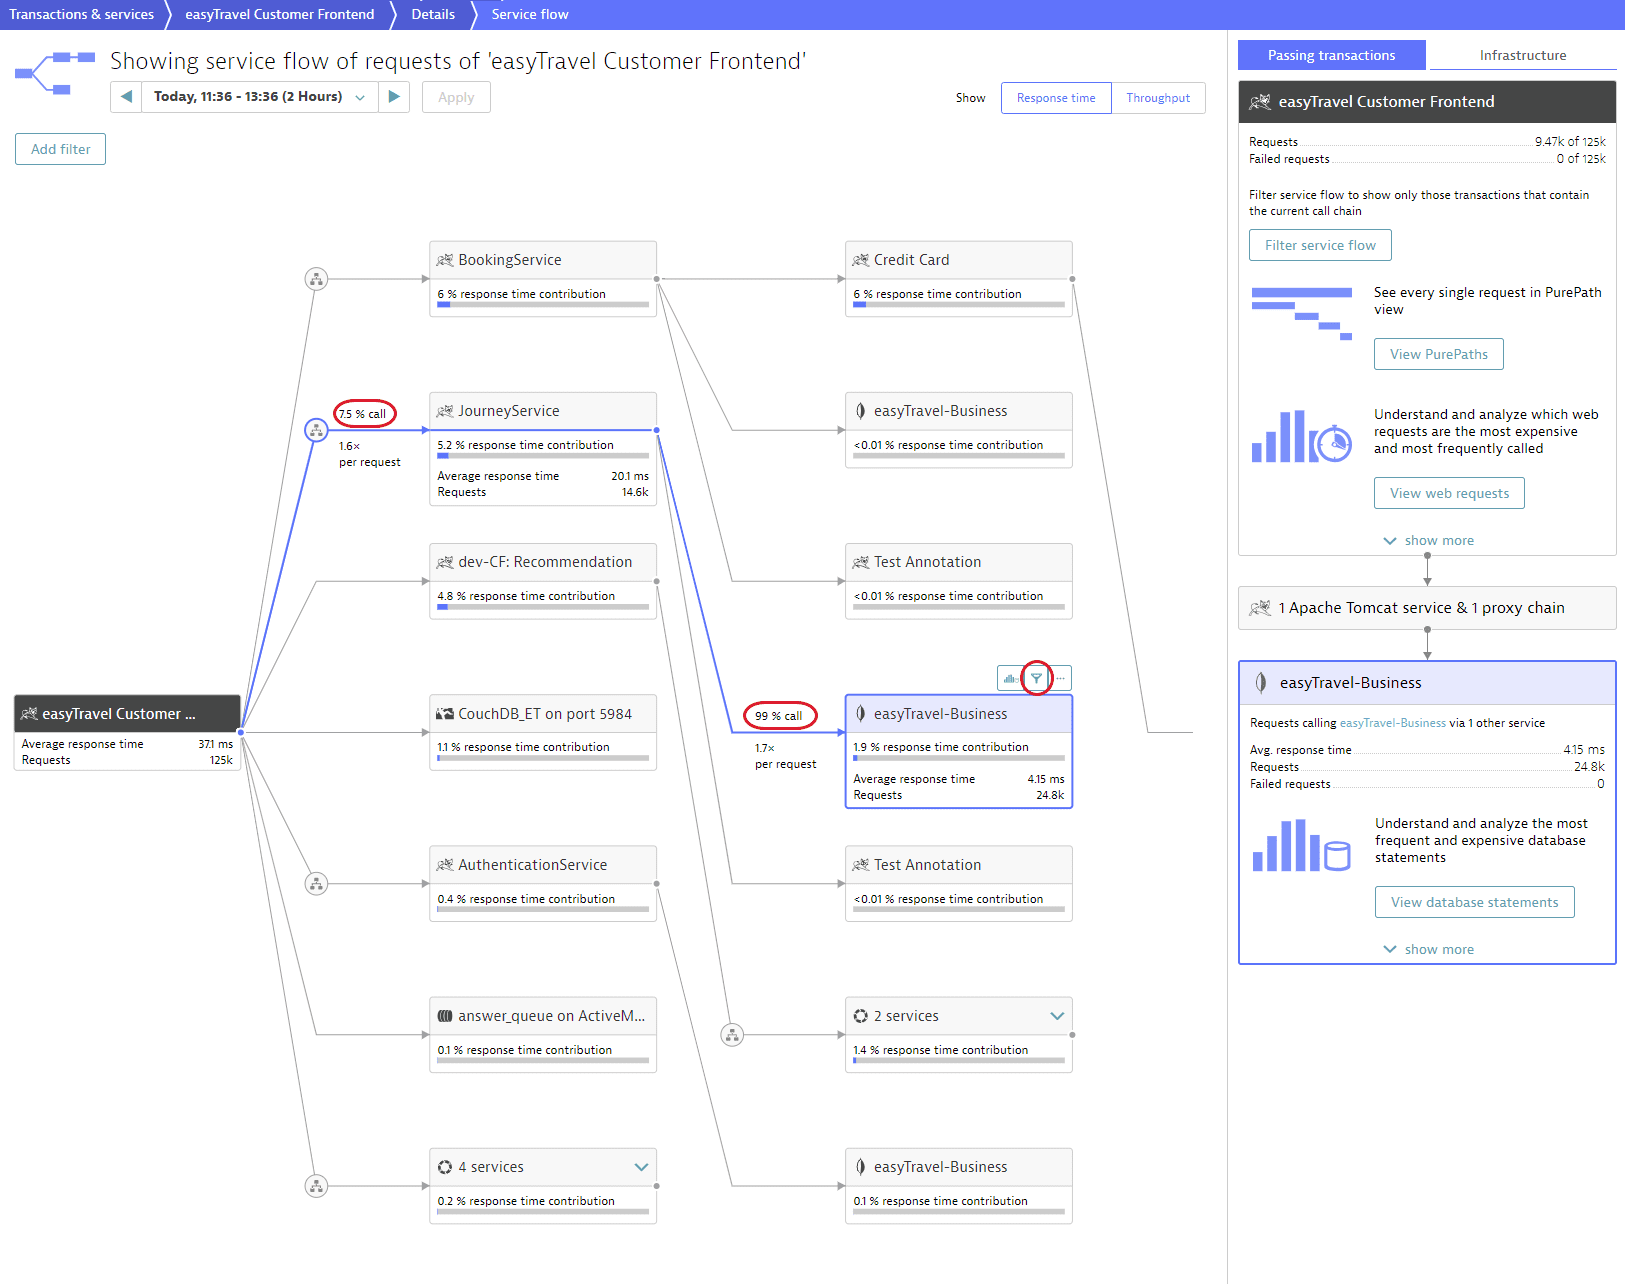 Service flow initial